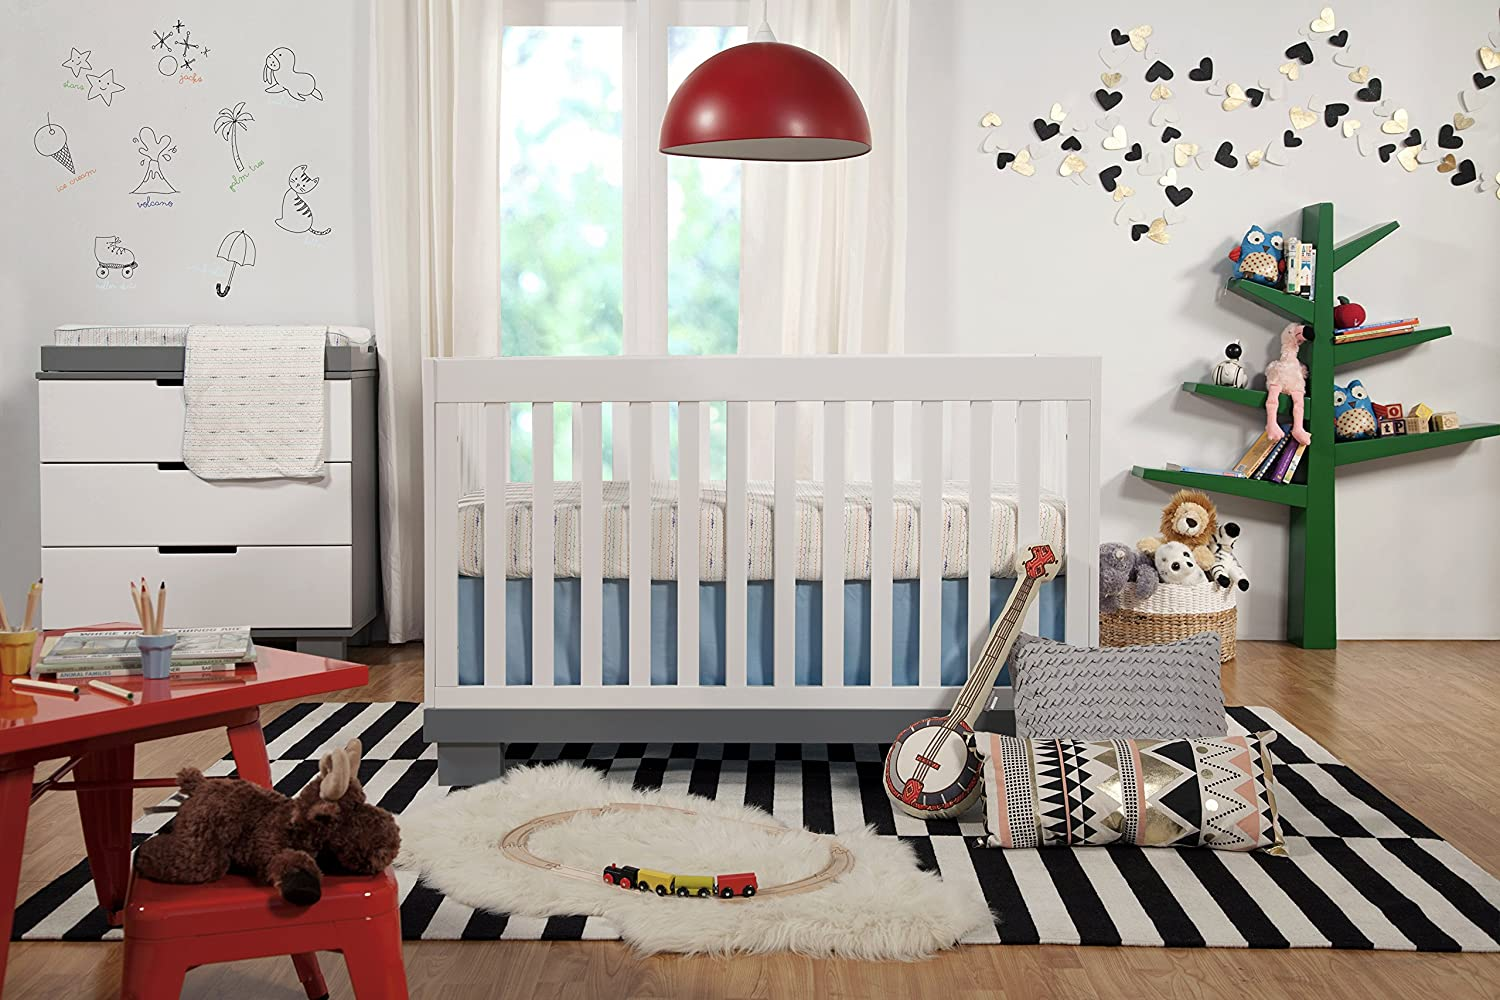 amazoncom babyletto modo 3in1 convertible crib with toddler bed conversion kit grey white baby